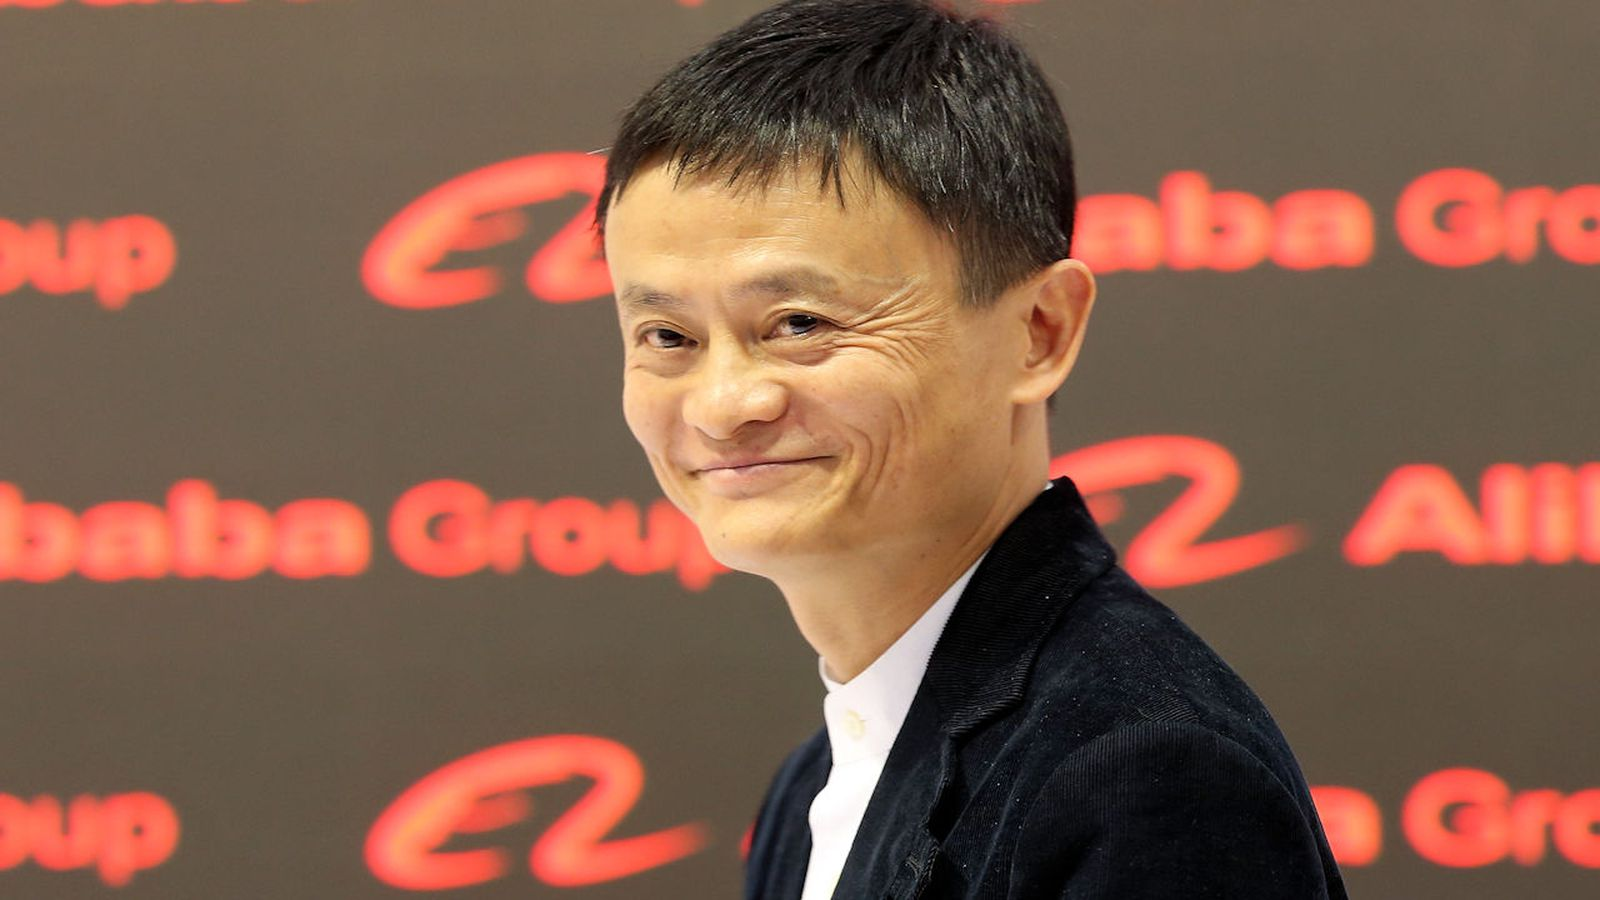 Alibaba paid $1 billion for a controlling stake in the